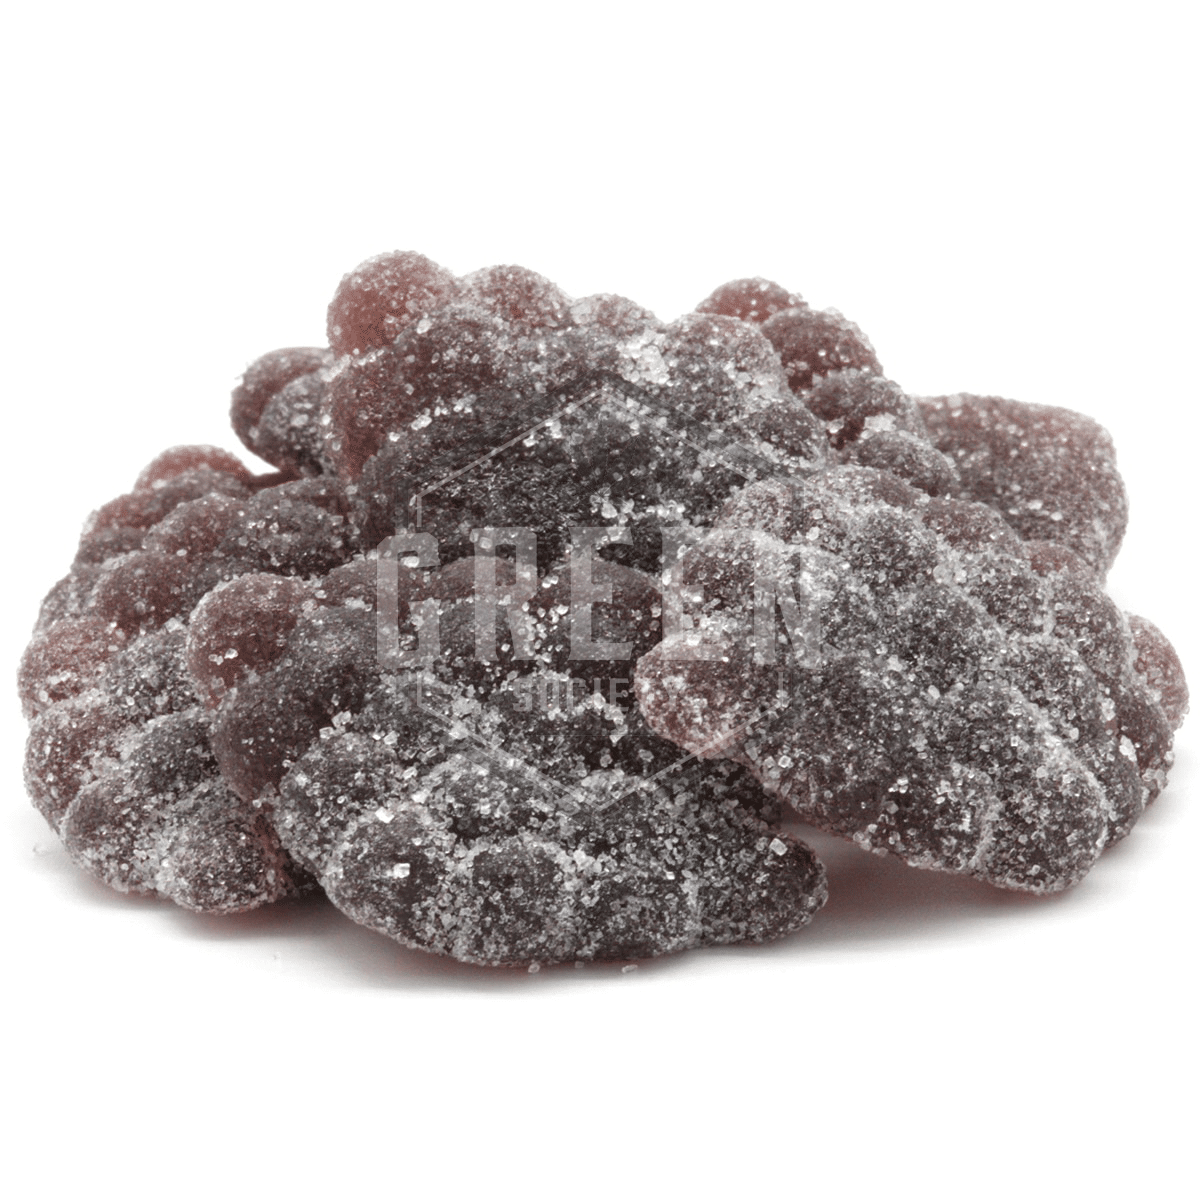 Grape Crush Gummies by Faded Cannabis Co. by Green Society - Image © 2018 Green Society. All Rights Reserved.